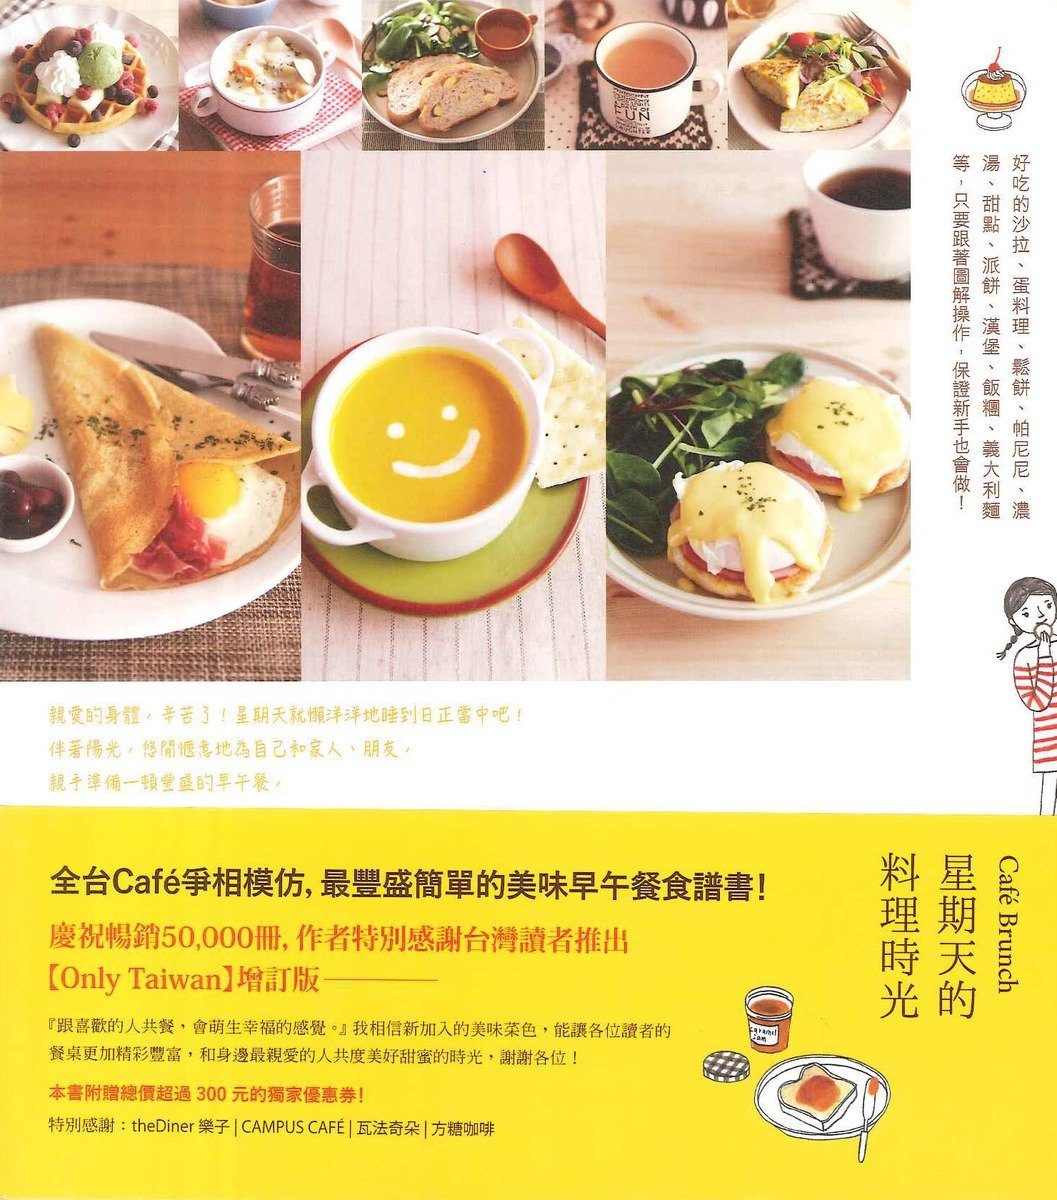 Cafe Brunch星期天的料理時光